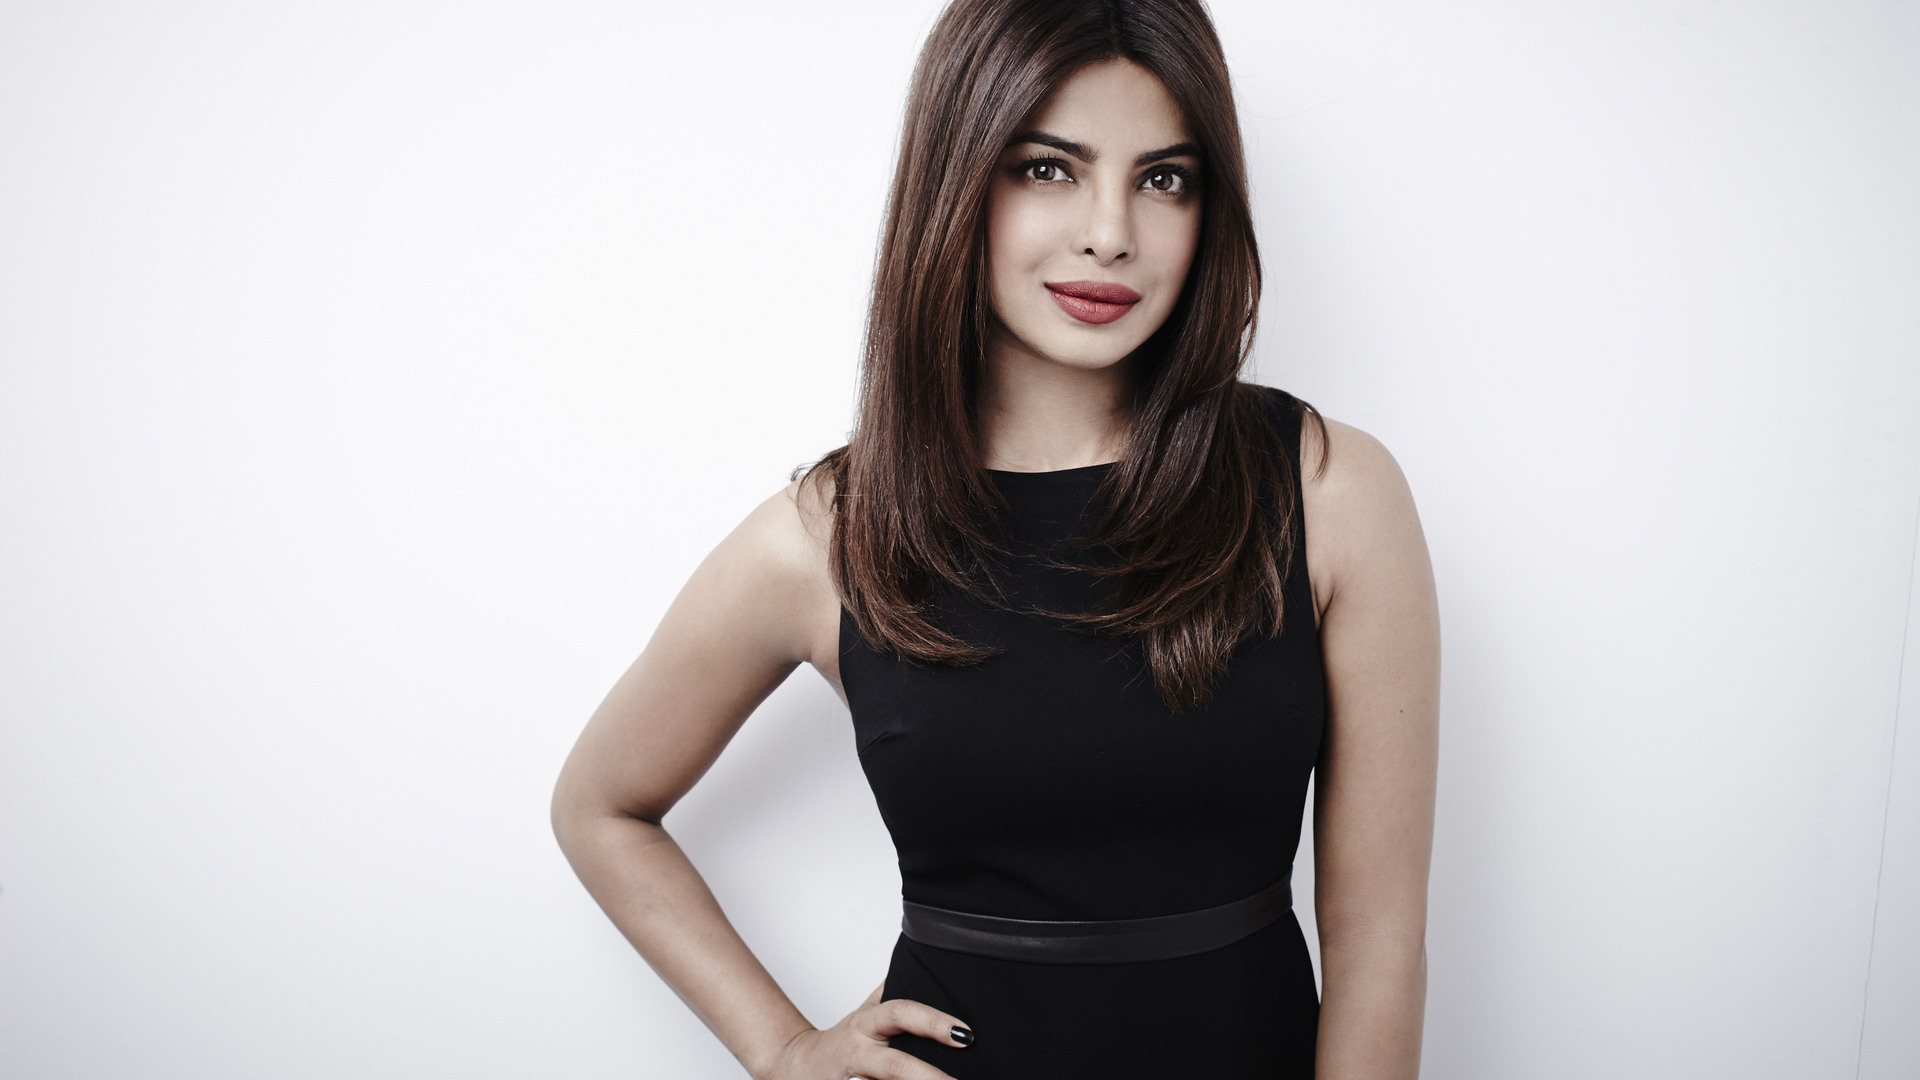 1920x1080 priyanka chopra 5k laptop full hd 1080p hd 4k wallpapers images backgrounds photos and pictures 2